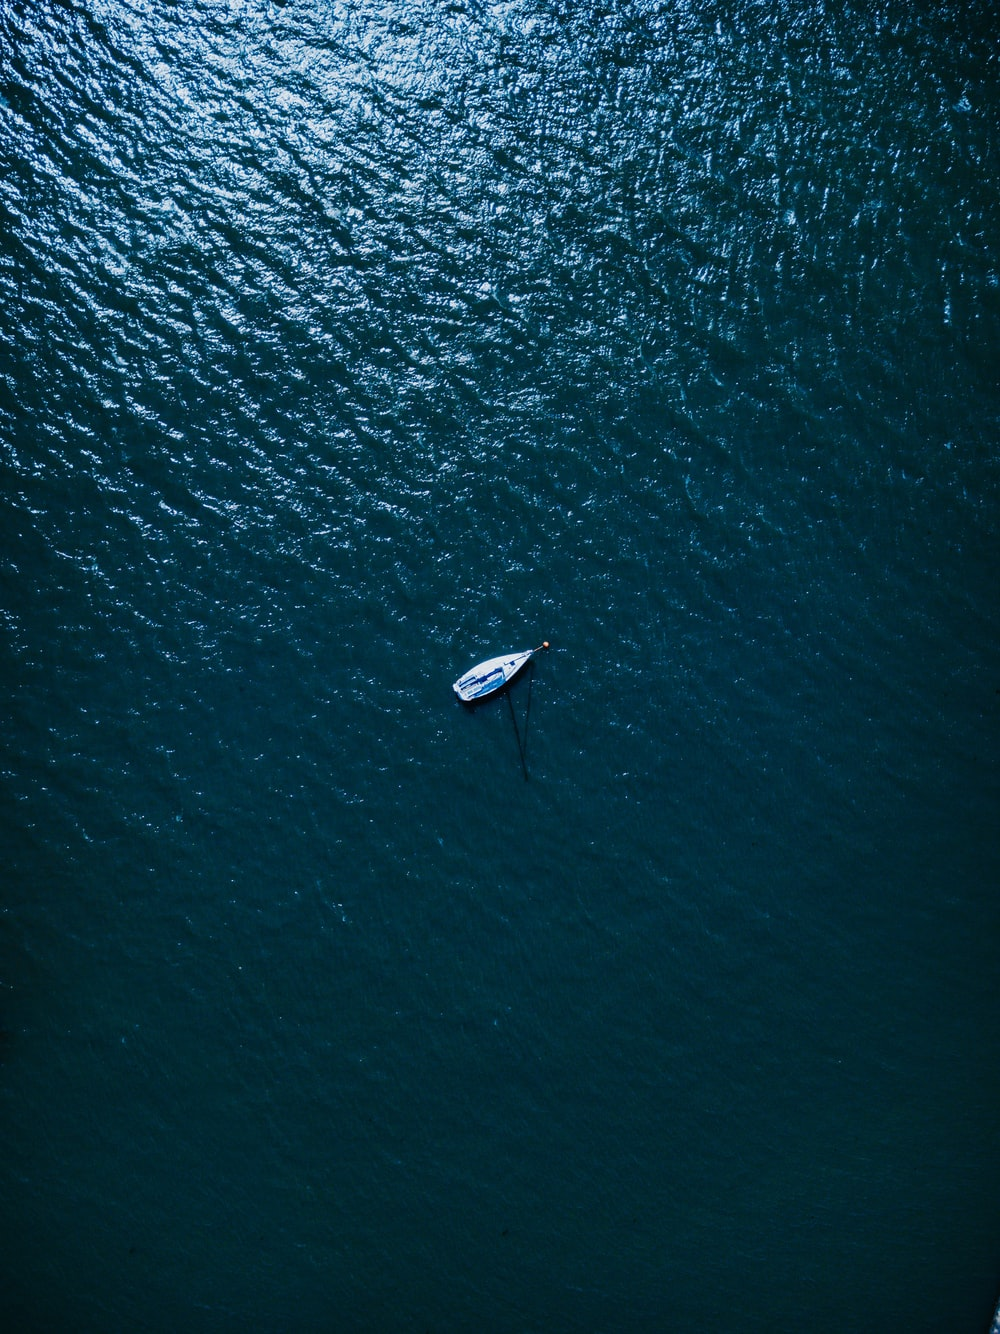 aerial photography of white boat on body of water at daytime